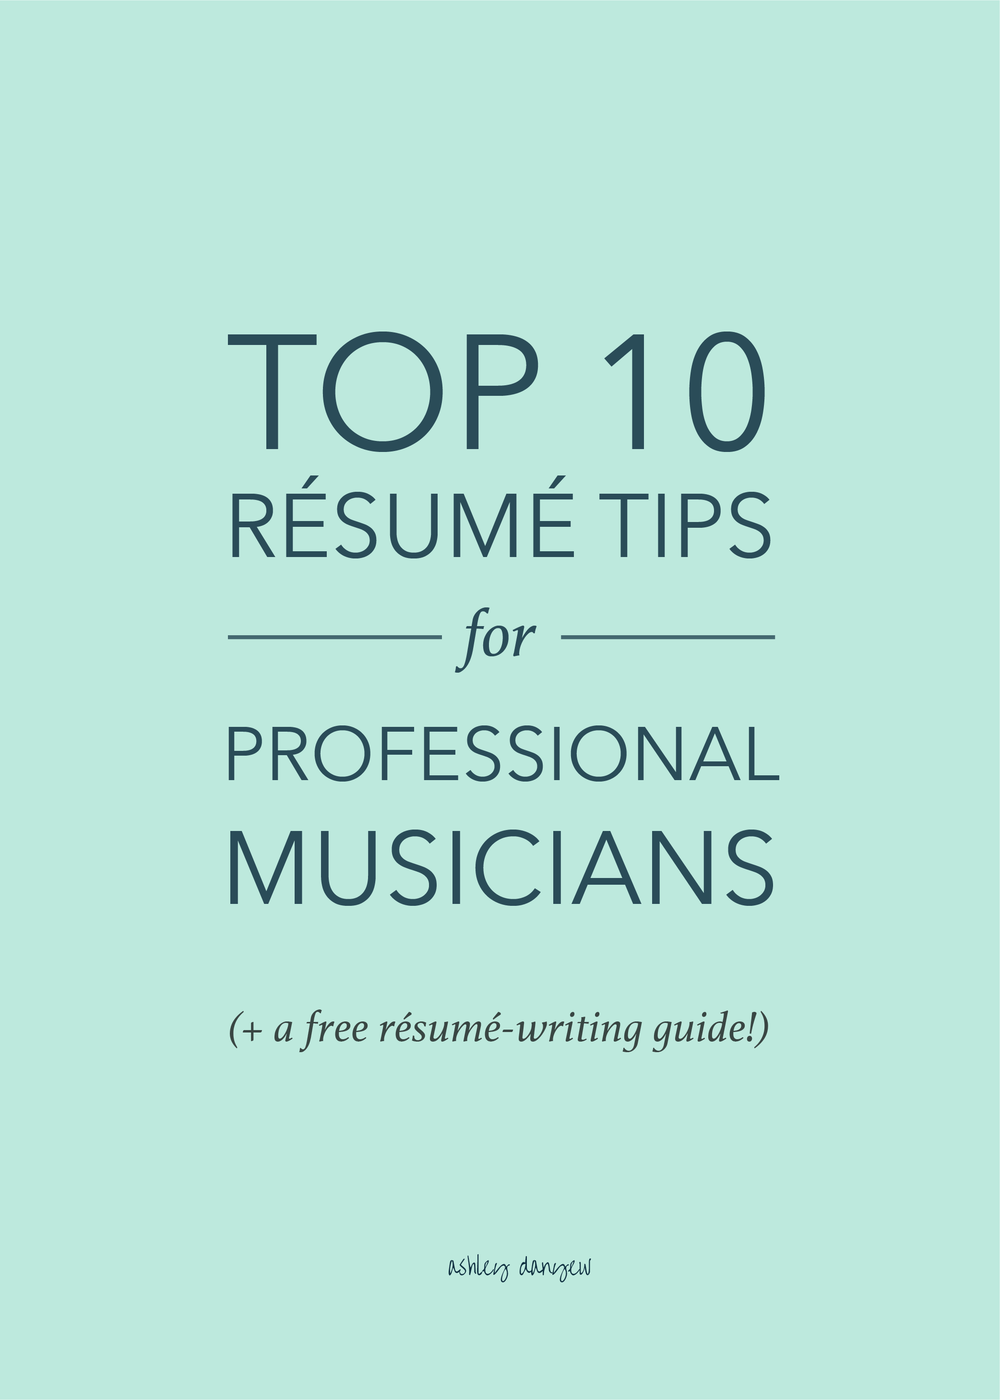 Top 10 Rsum Tips for Professional Musicians Ashley Danyew